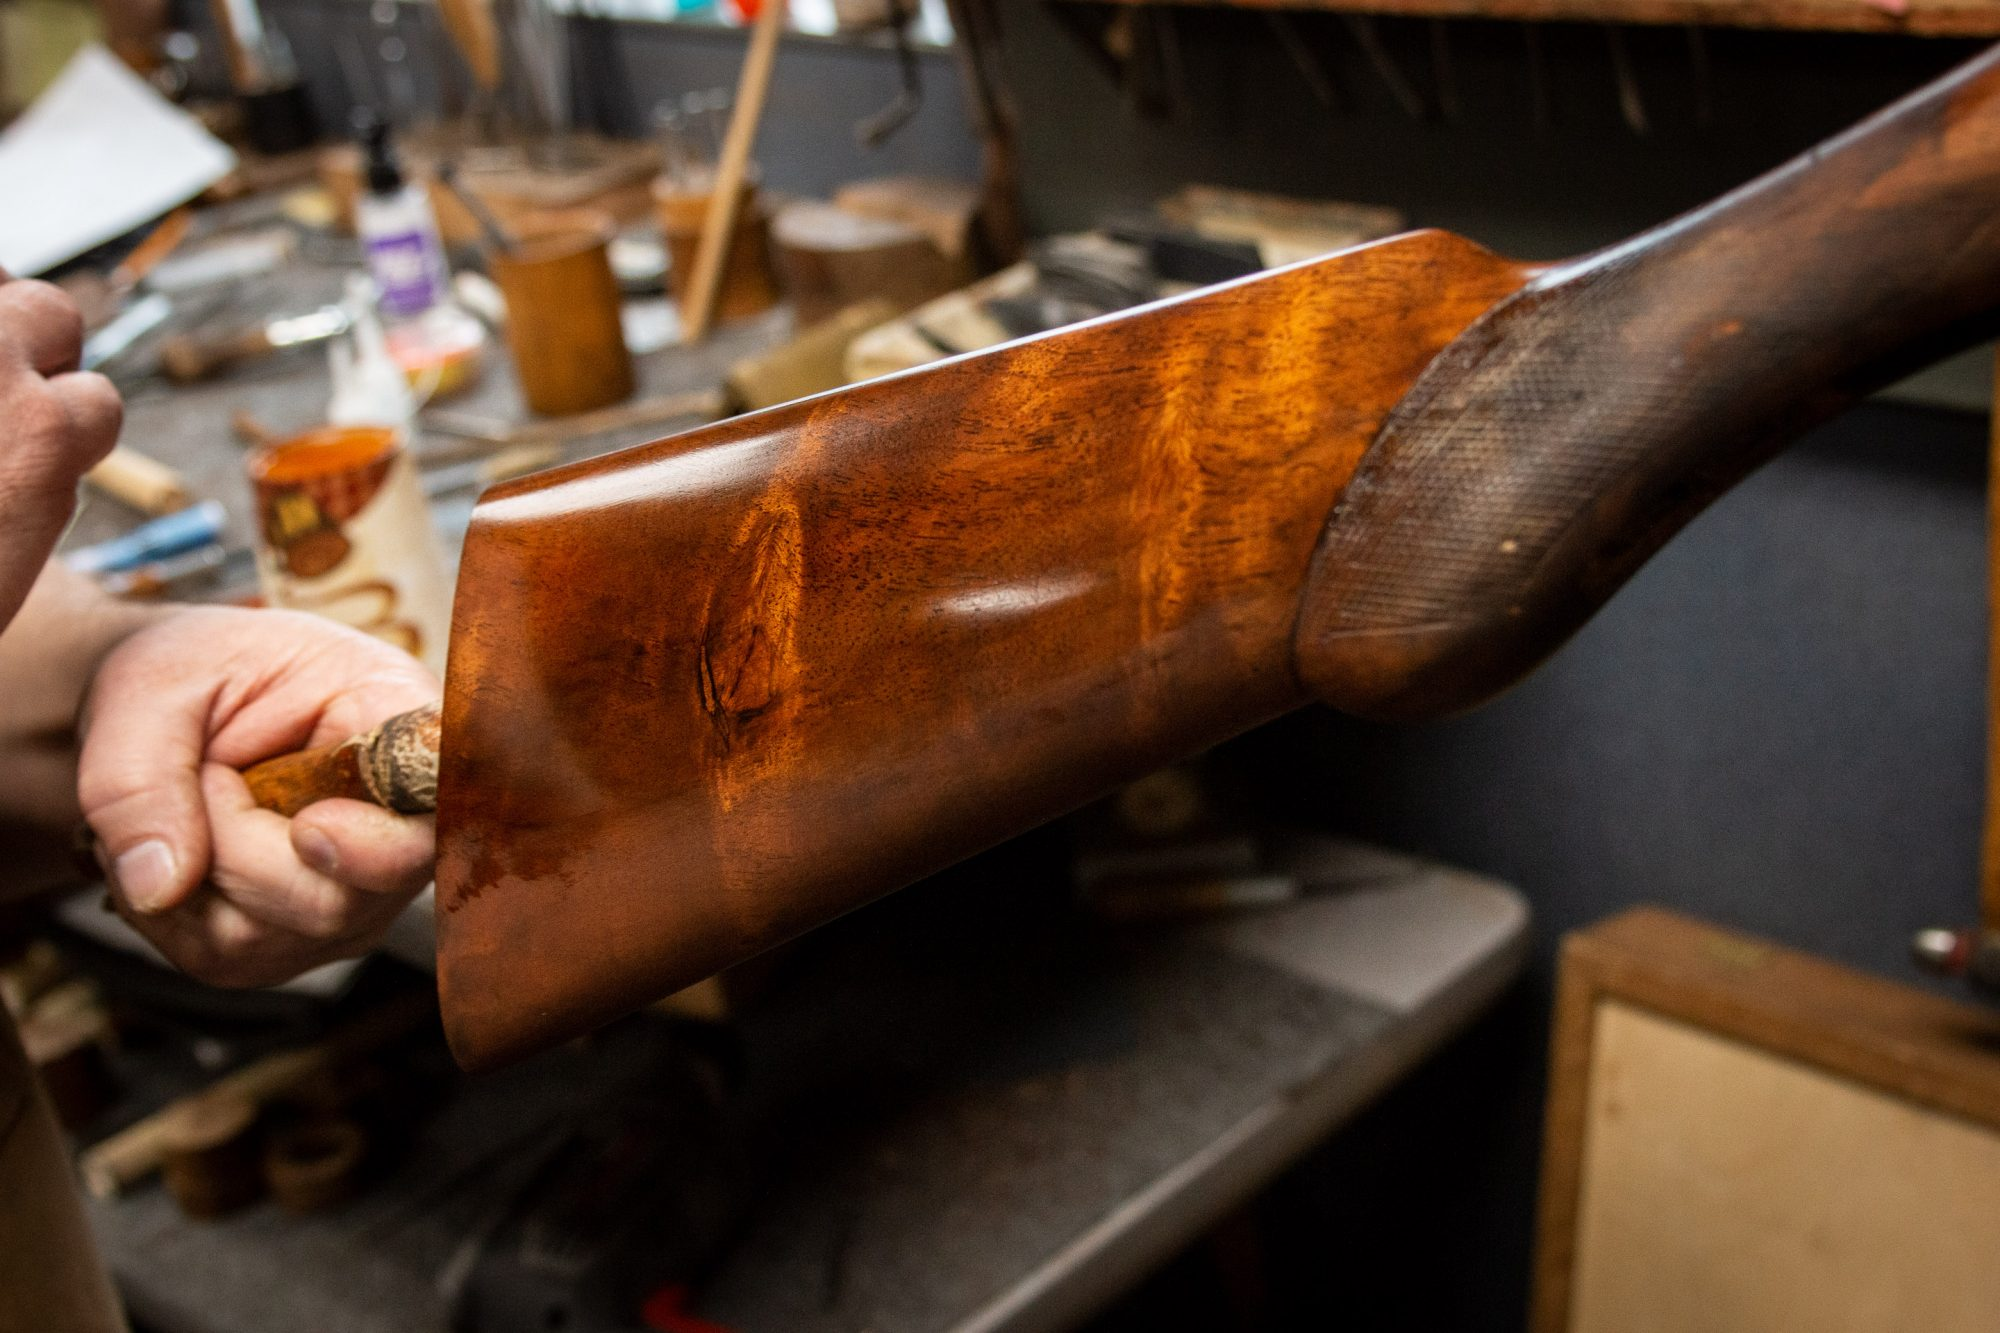 Photo of a restored L.C. Smith 12 gauge shotgun, during restoration work by Turnbull Restoration of Bloomfield NY